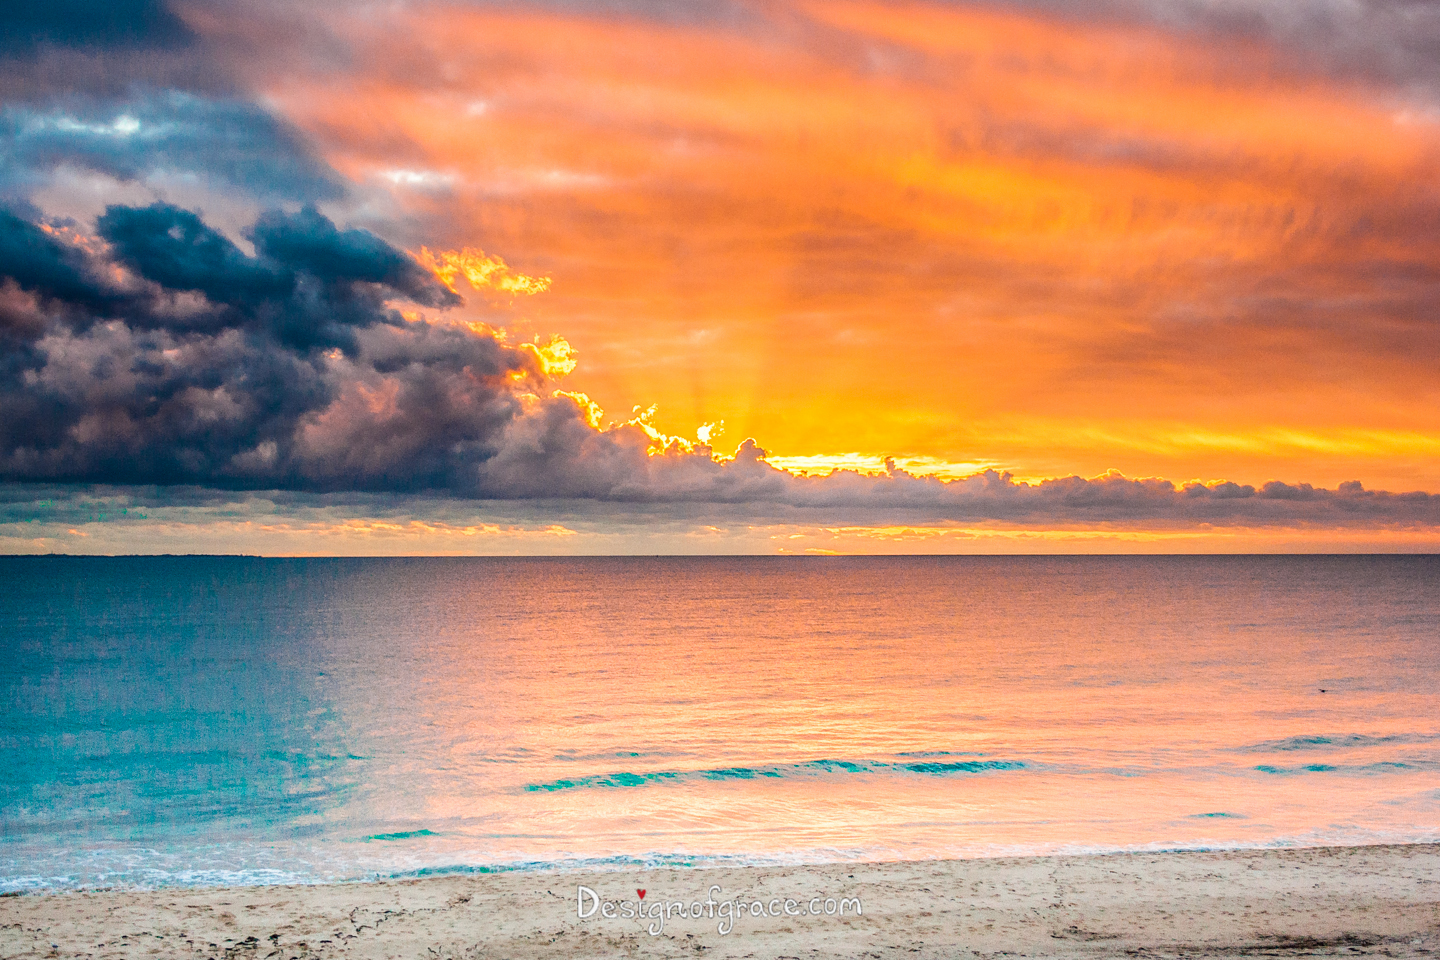 Pink And Orange Sunset With A Dark Blue Cloud On The Left Ocean Reflecting